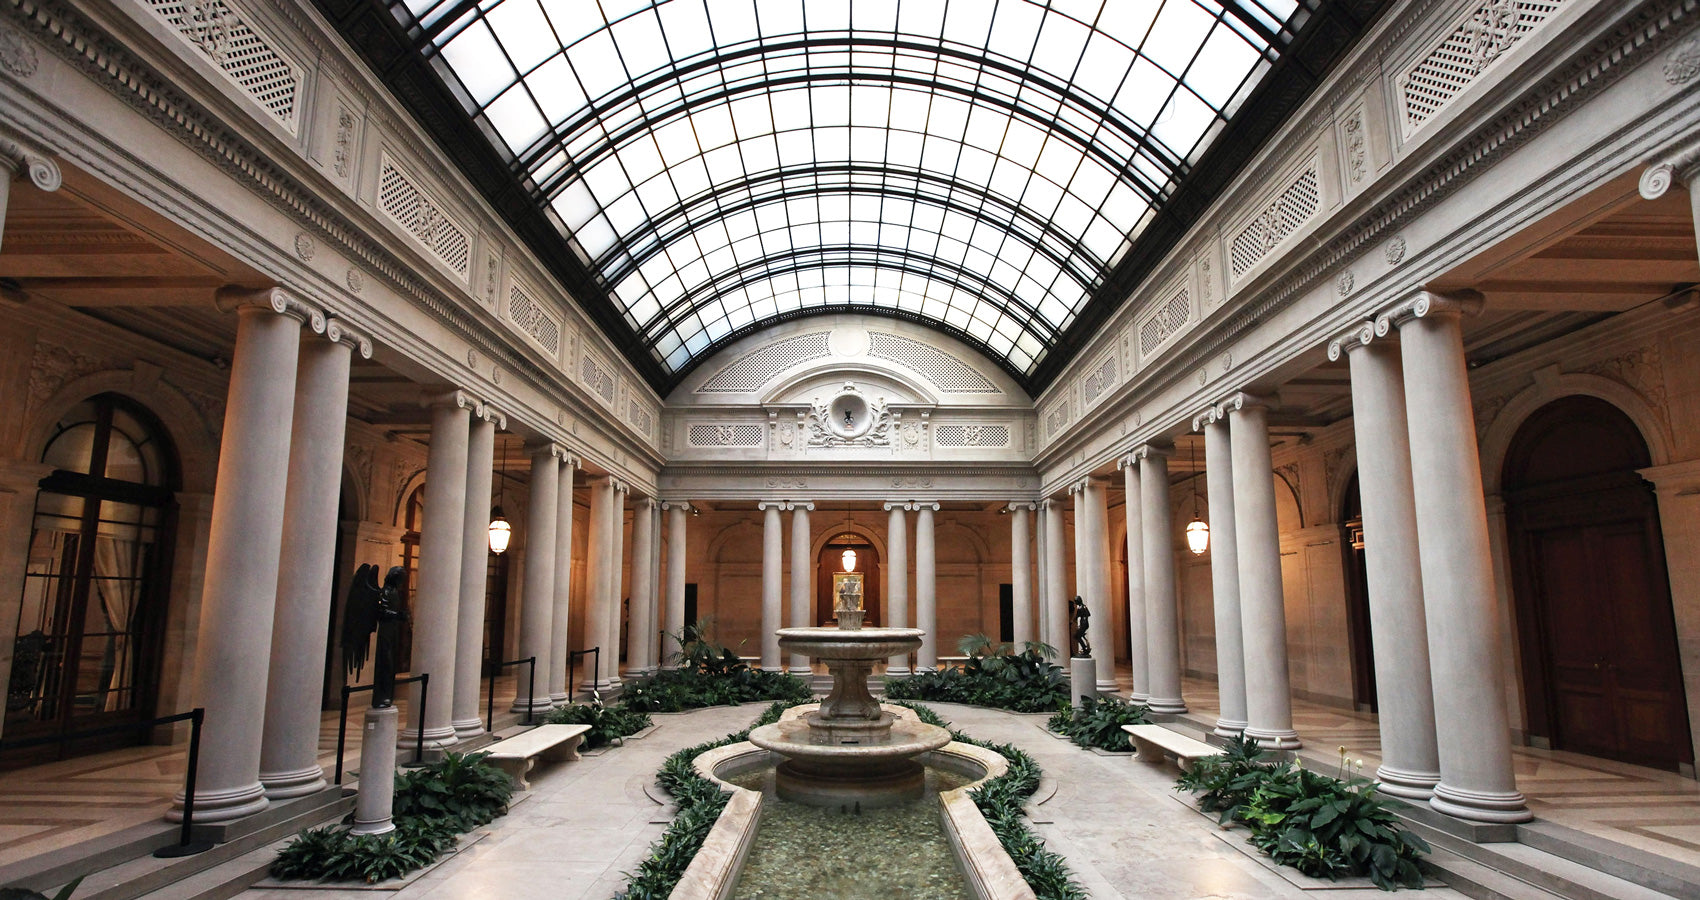 Frick Collection interior